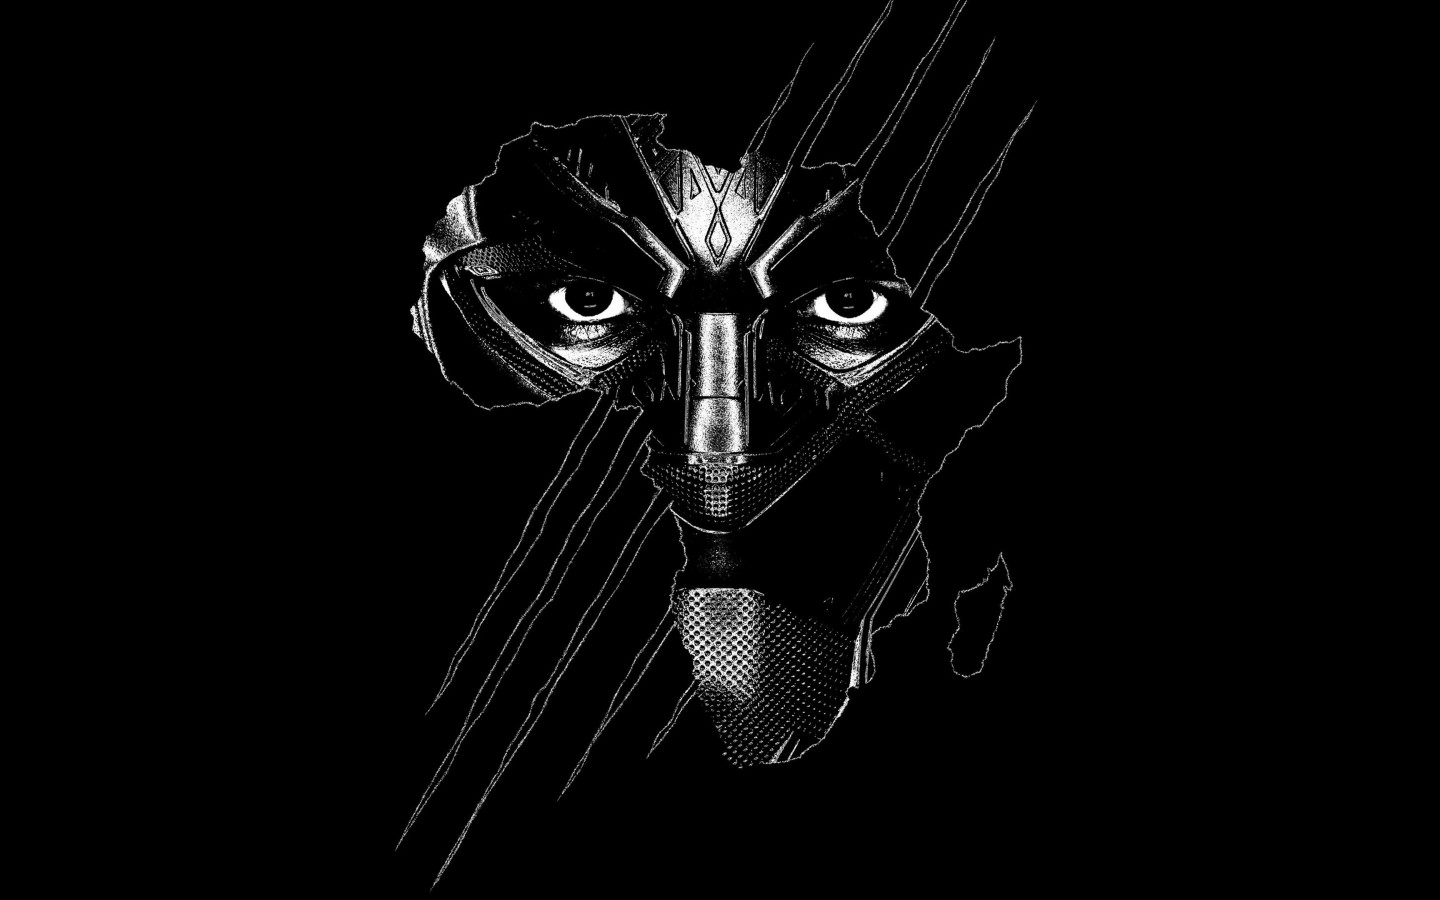 Black Panther wallpaper 1440x900